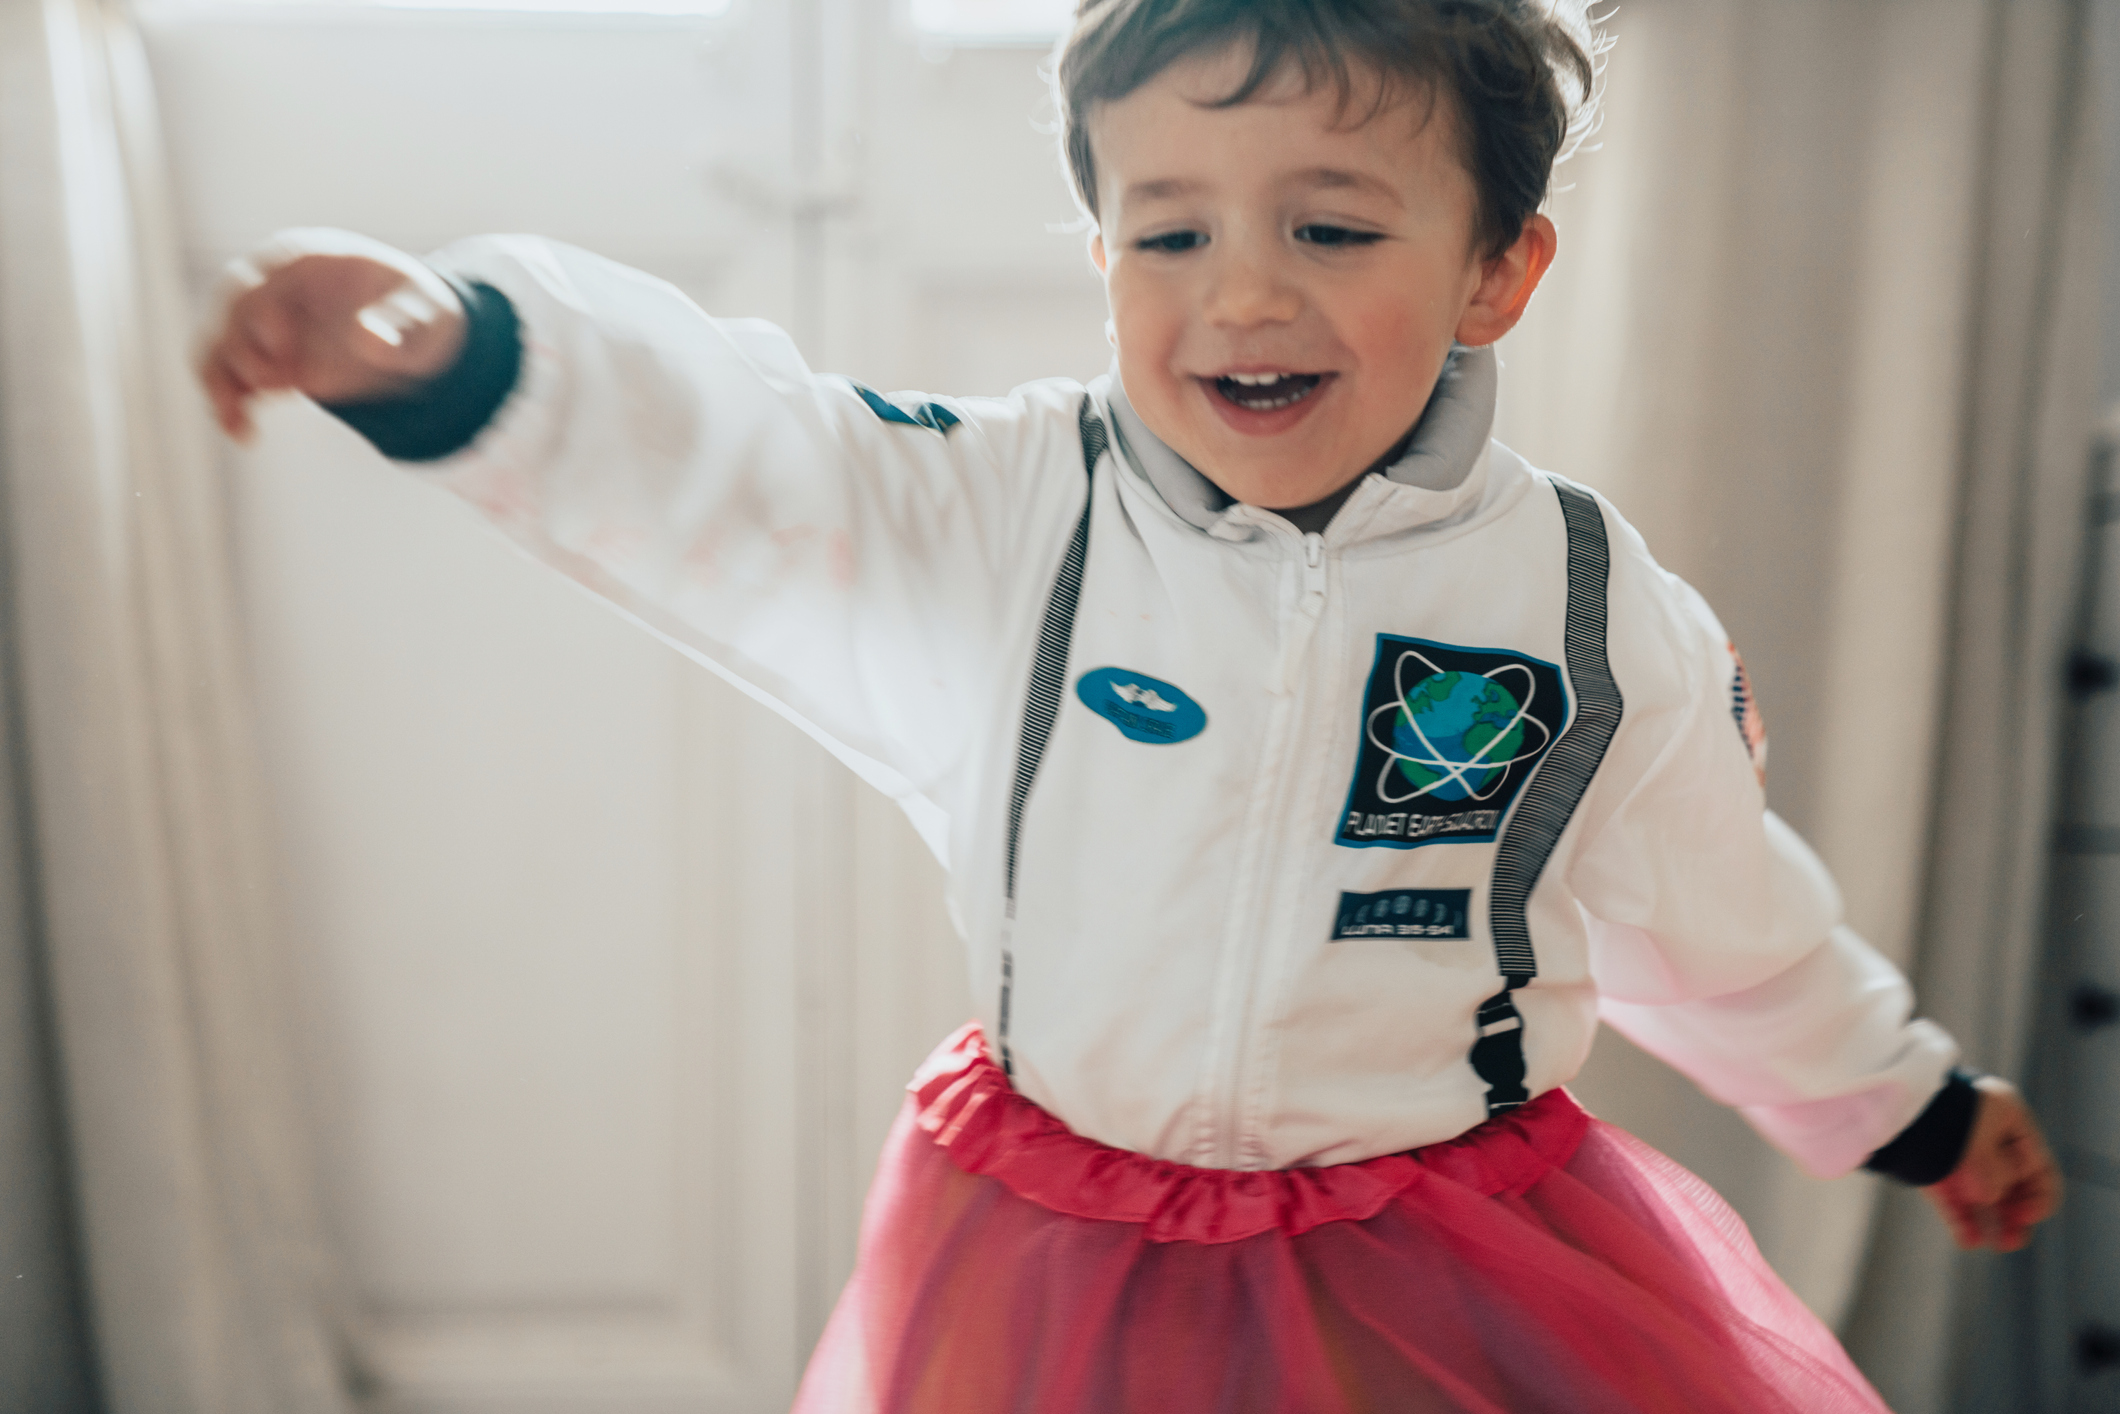 white child with short brown hair dancing in an astronaut costume and a pink tutu